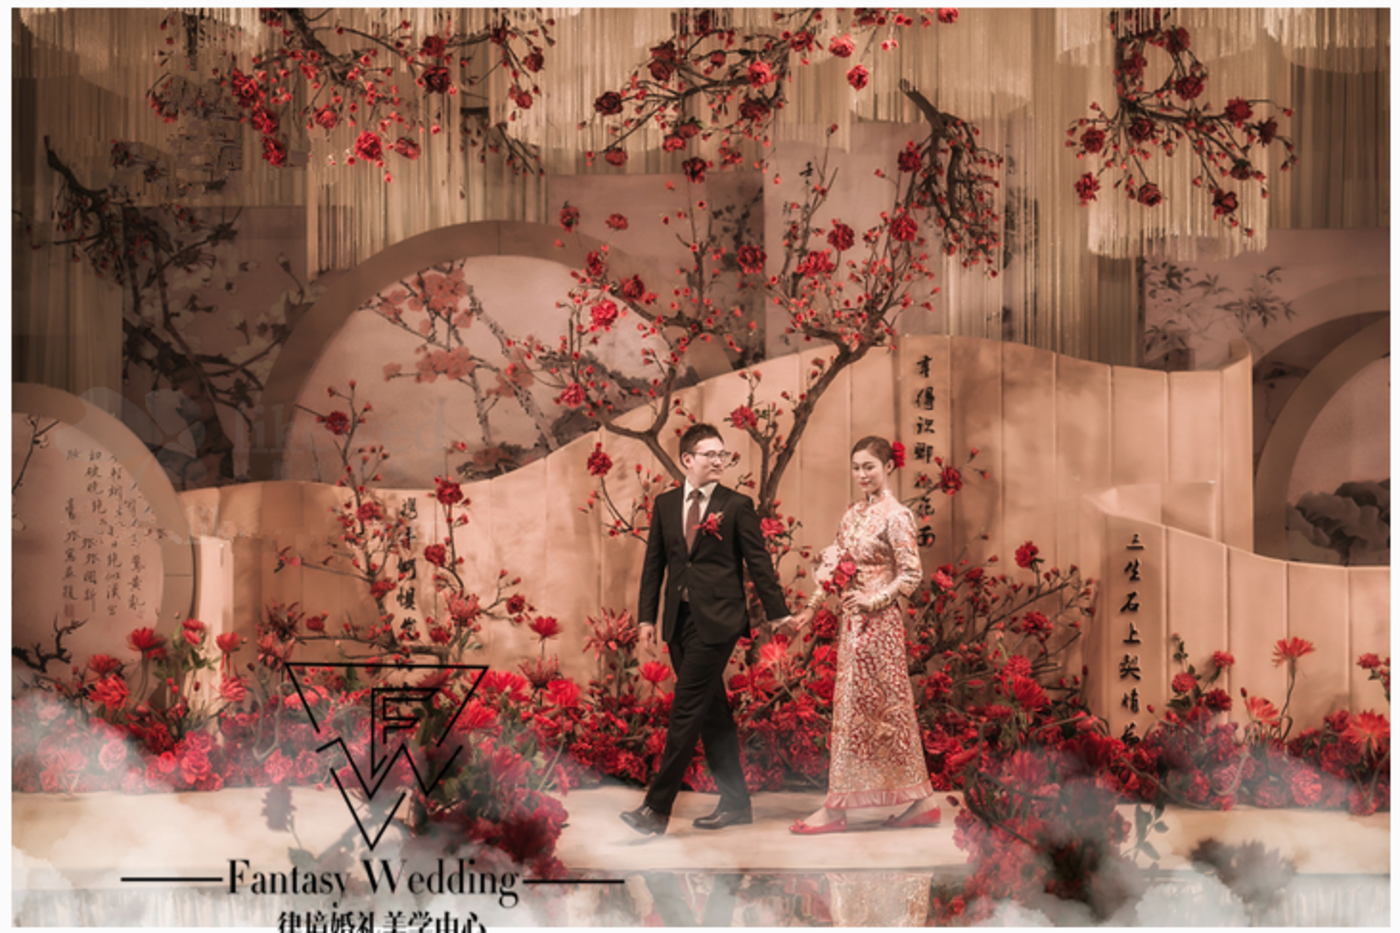 「Fantasy Wedding」 景秀未央30